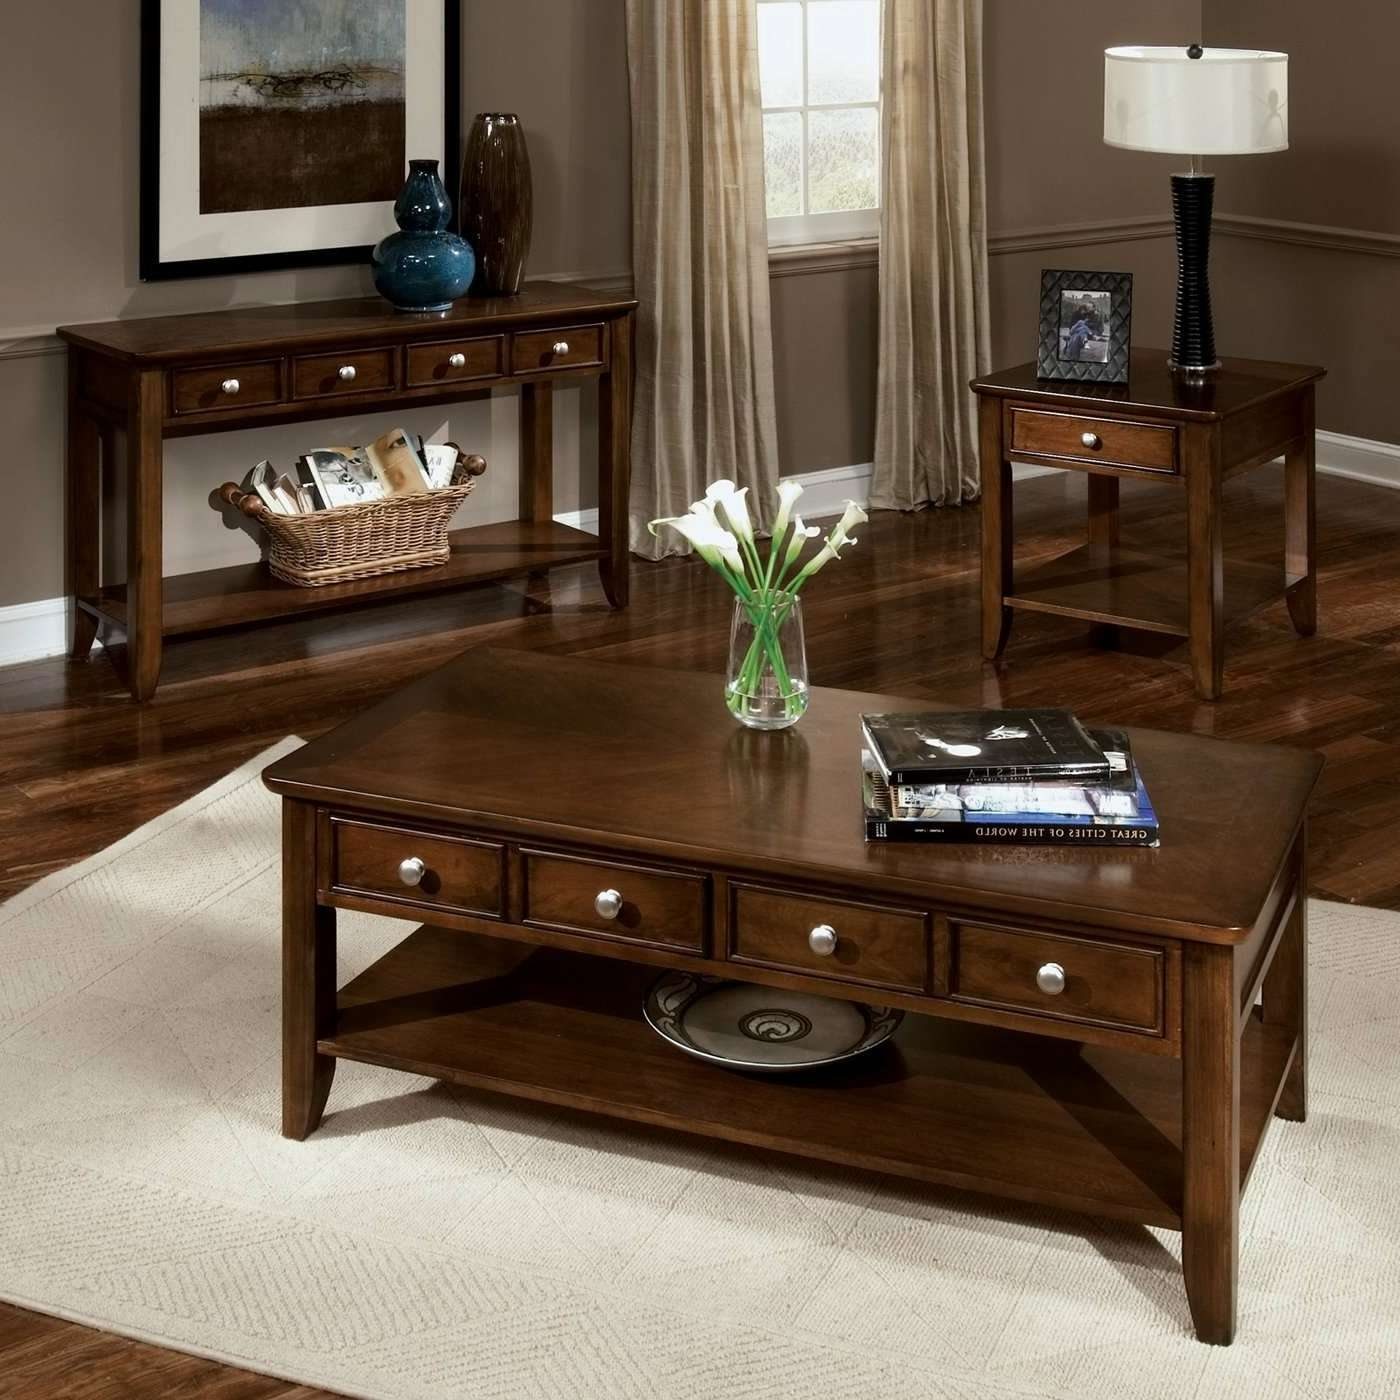 Most Recently Released Big Black Coffee Tables Inside Coffee Table : Amazing Oval Coffee Table Black Coffee Table Sets (View 8 of 20)